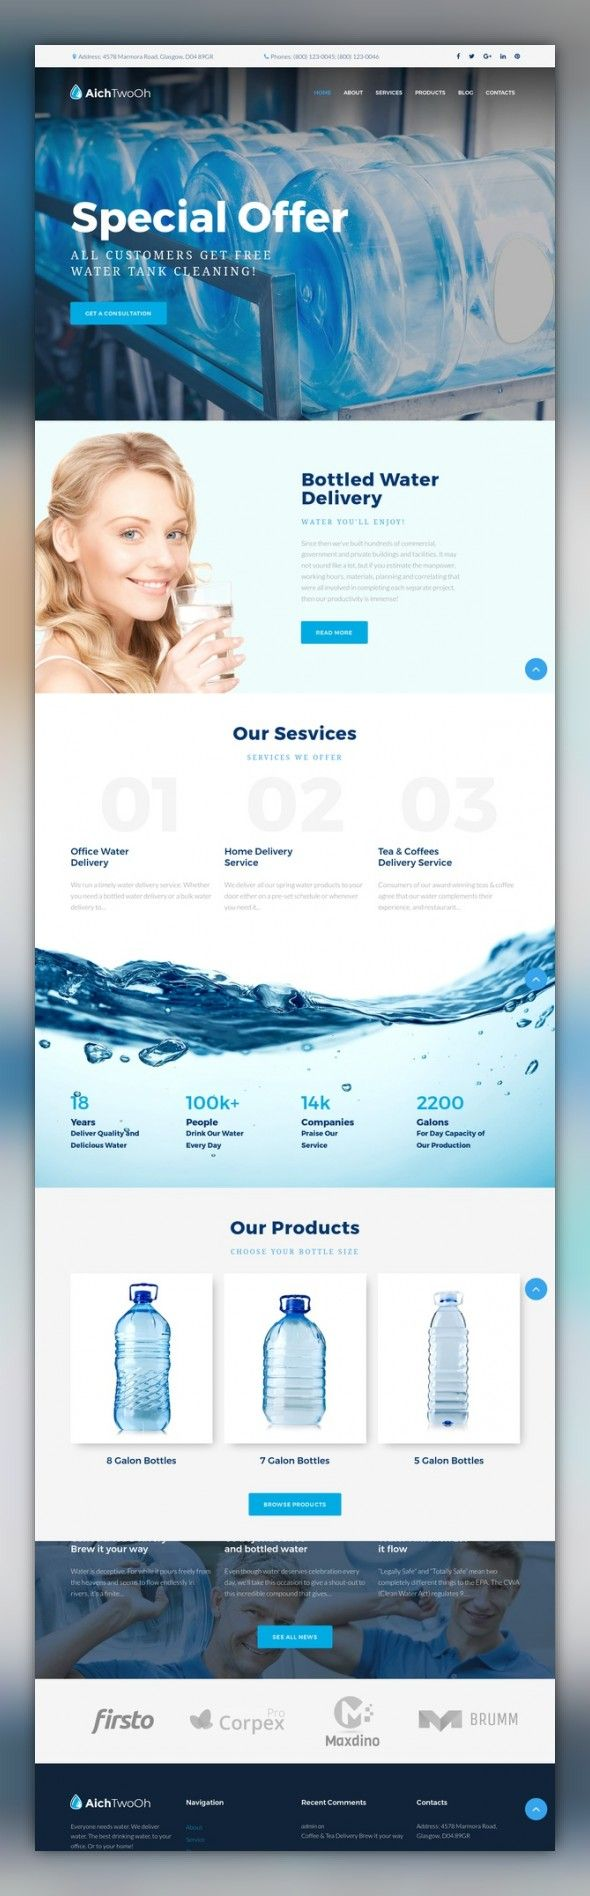 Water Delivery Service Moto CMS 3 Template CMS & Blog Templates, Moto CMS 3 Templates, Business & Services, Maintenance Services Templates, Delivery Services Templates Delivery Services Responsive Moto CMS 3 Template. Additional features, comprehensive documentation and stock photos are included.